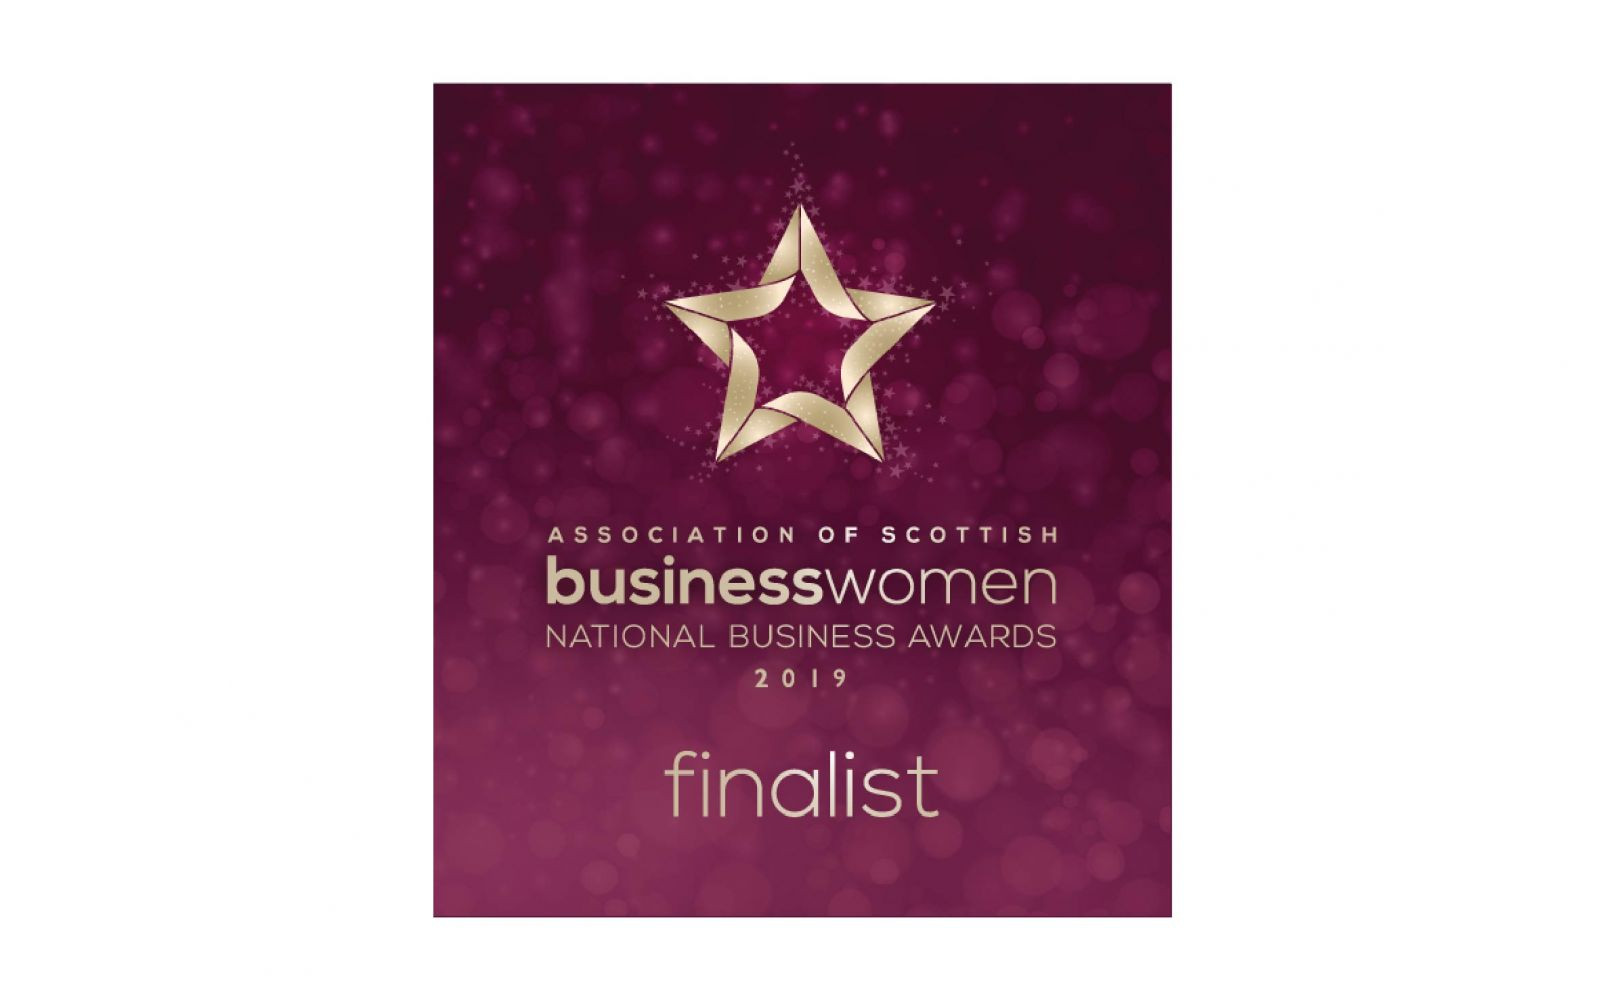 ICTS' Louise Cameron listed amongst 2019 Association of Scottish Businesswomen Awards finalists